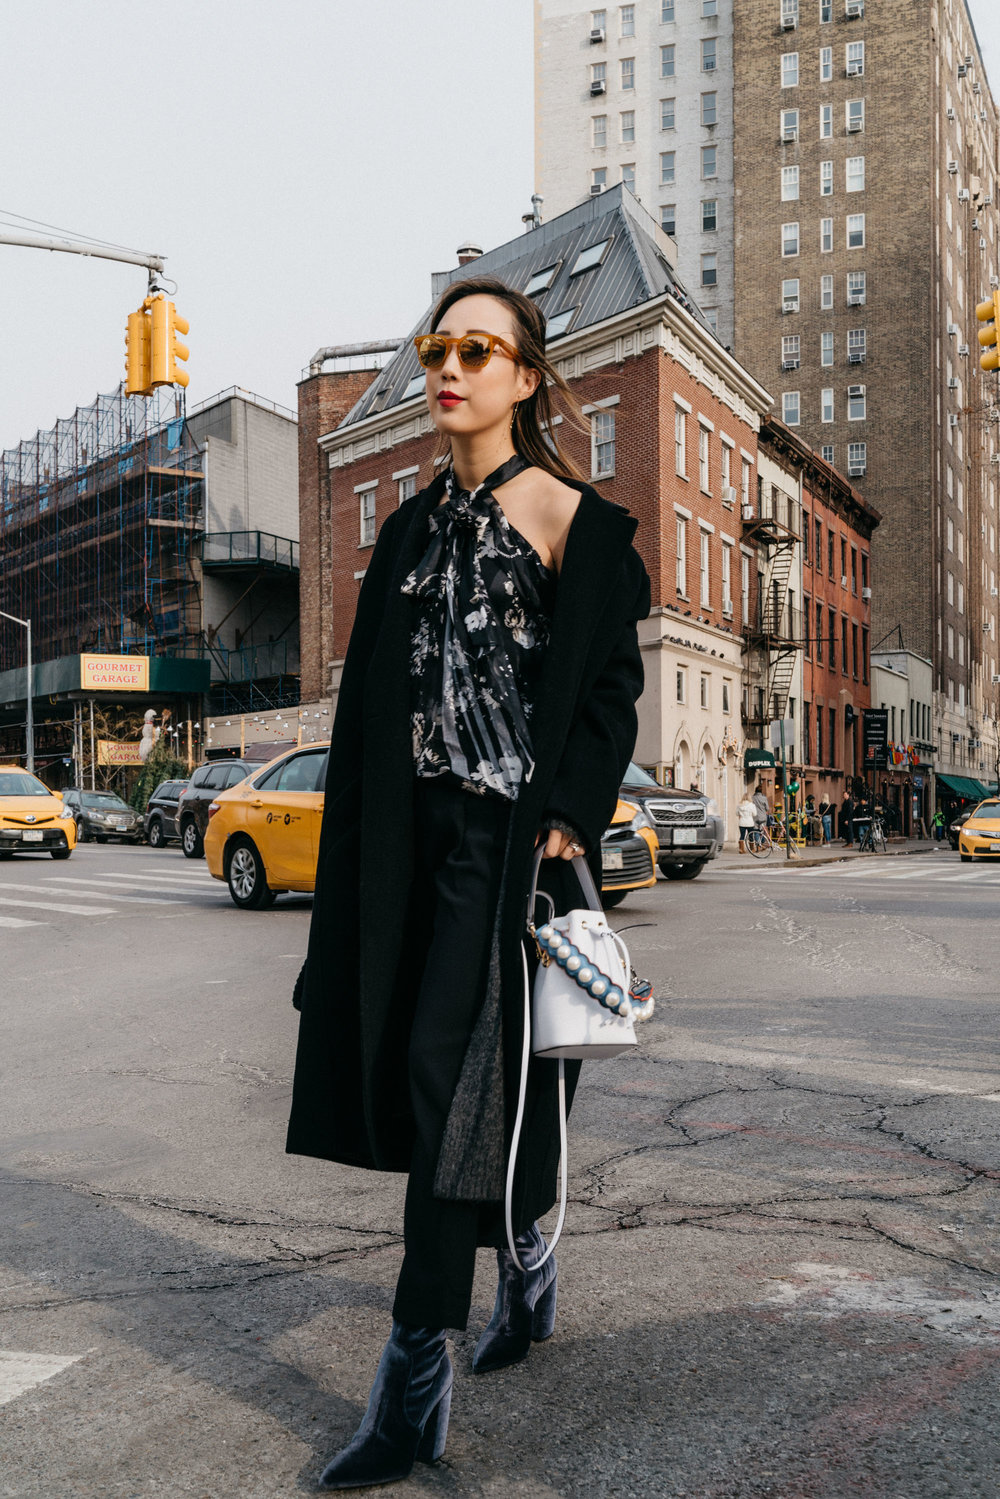 Margaux Lonnberg x Mija Coat , Erdem Top, Aritzia Trousers, Prada Boots, Fendi Bag,  Oliver Peoples Sunglasses